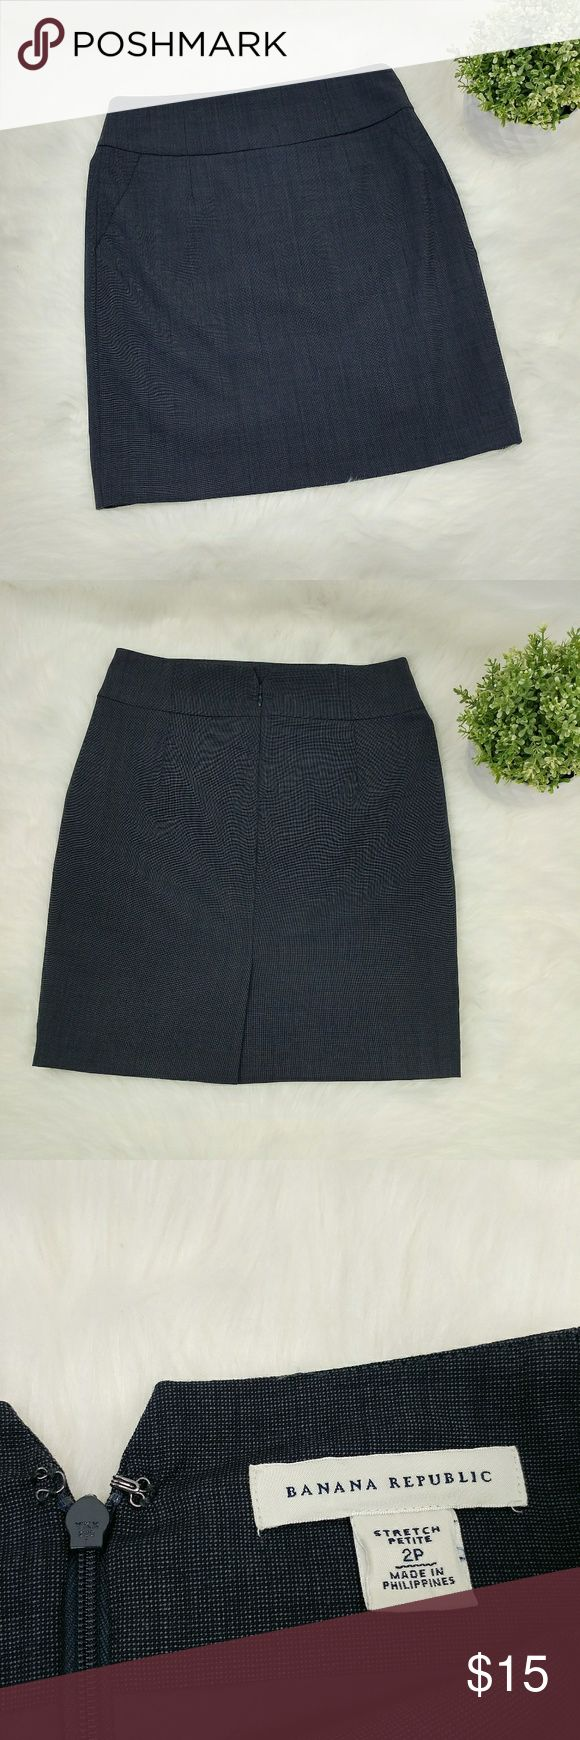 """Banana Republic wool blend navy pencil skirt Banana Republic wool blend career navy stretch pencil skirt Two front pockets that still have the stitching never been undone. Back slit 4 3/4"""" Waist 14"""" flat across Length 19.5"""" Has a tiny flaw at the waist (pictured) Banana Republic Skirts Pencil"""